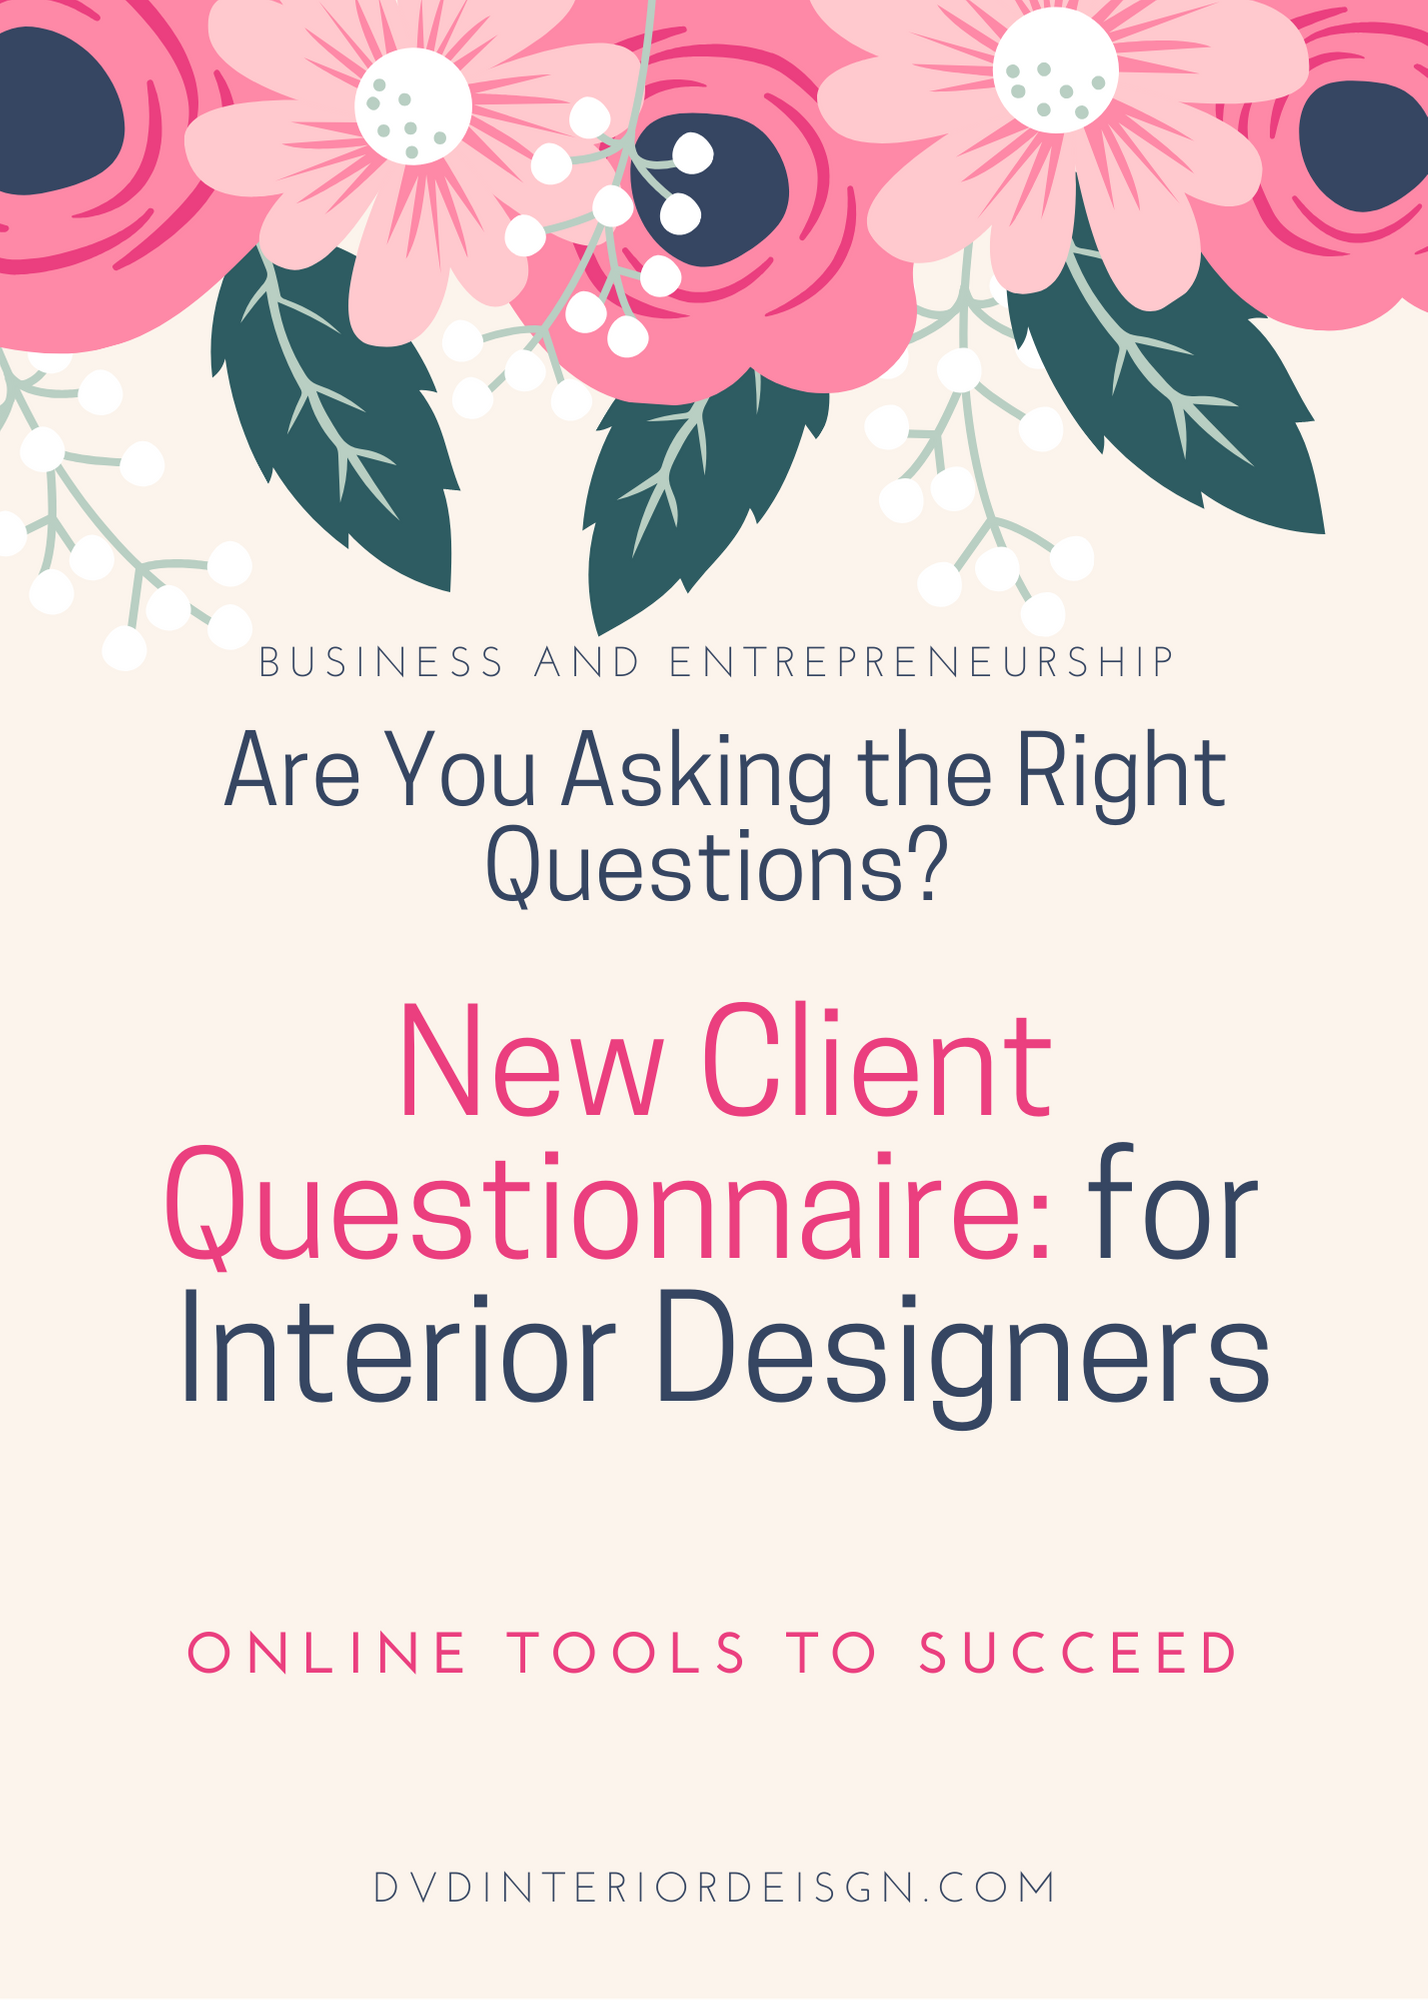 New Client Questionnaire Are You Asking The Right Questions Dvd Interior Design In 2020 Client Questionnaire Online Interior Design Services This Or That Questions